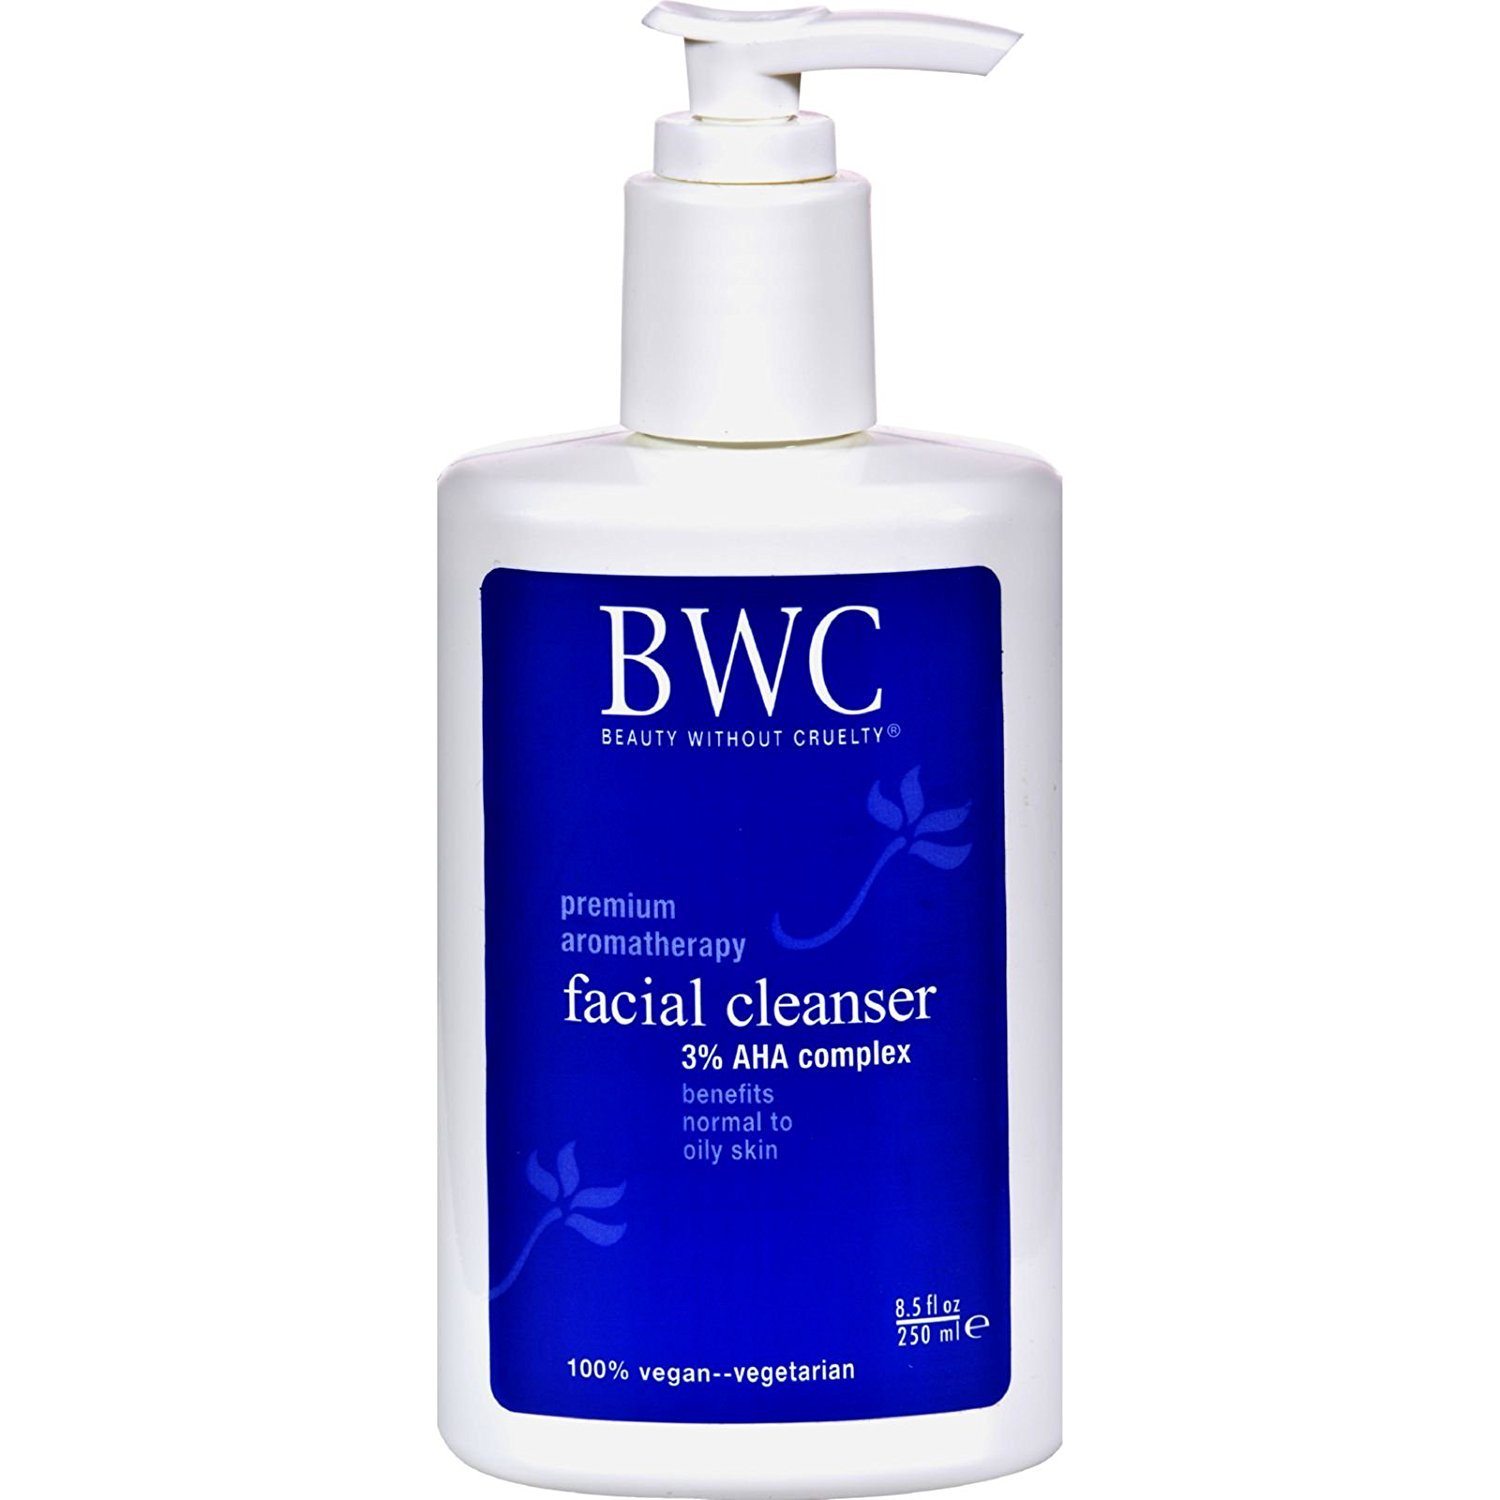 Beauty Without Cruelty Facial Cleanser Alpha Hydroxy Complex - 8.5 fl oz - HSG-536623